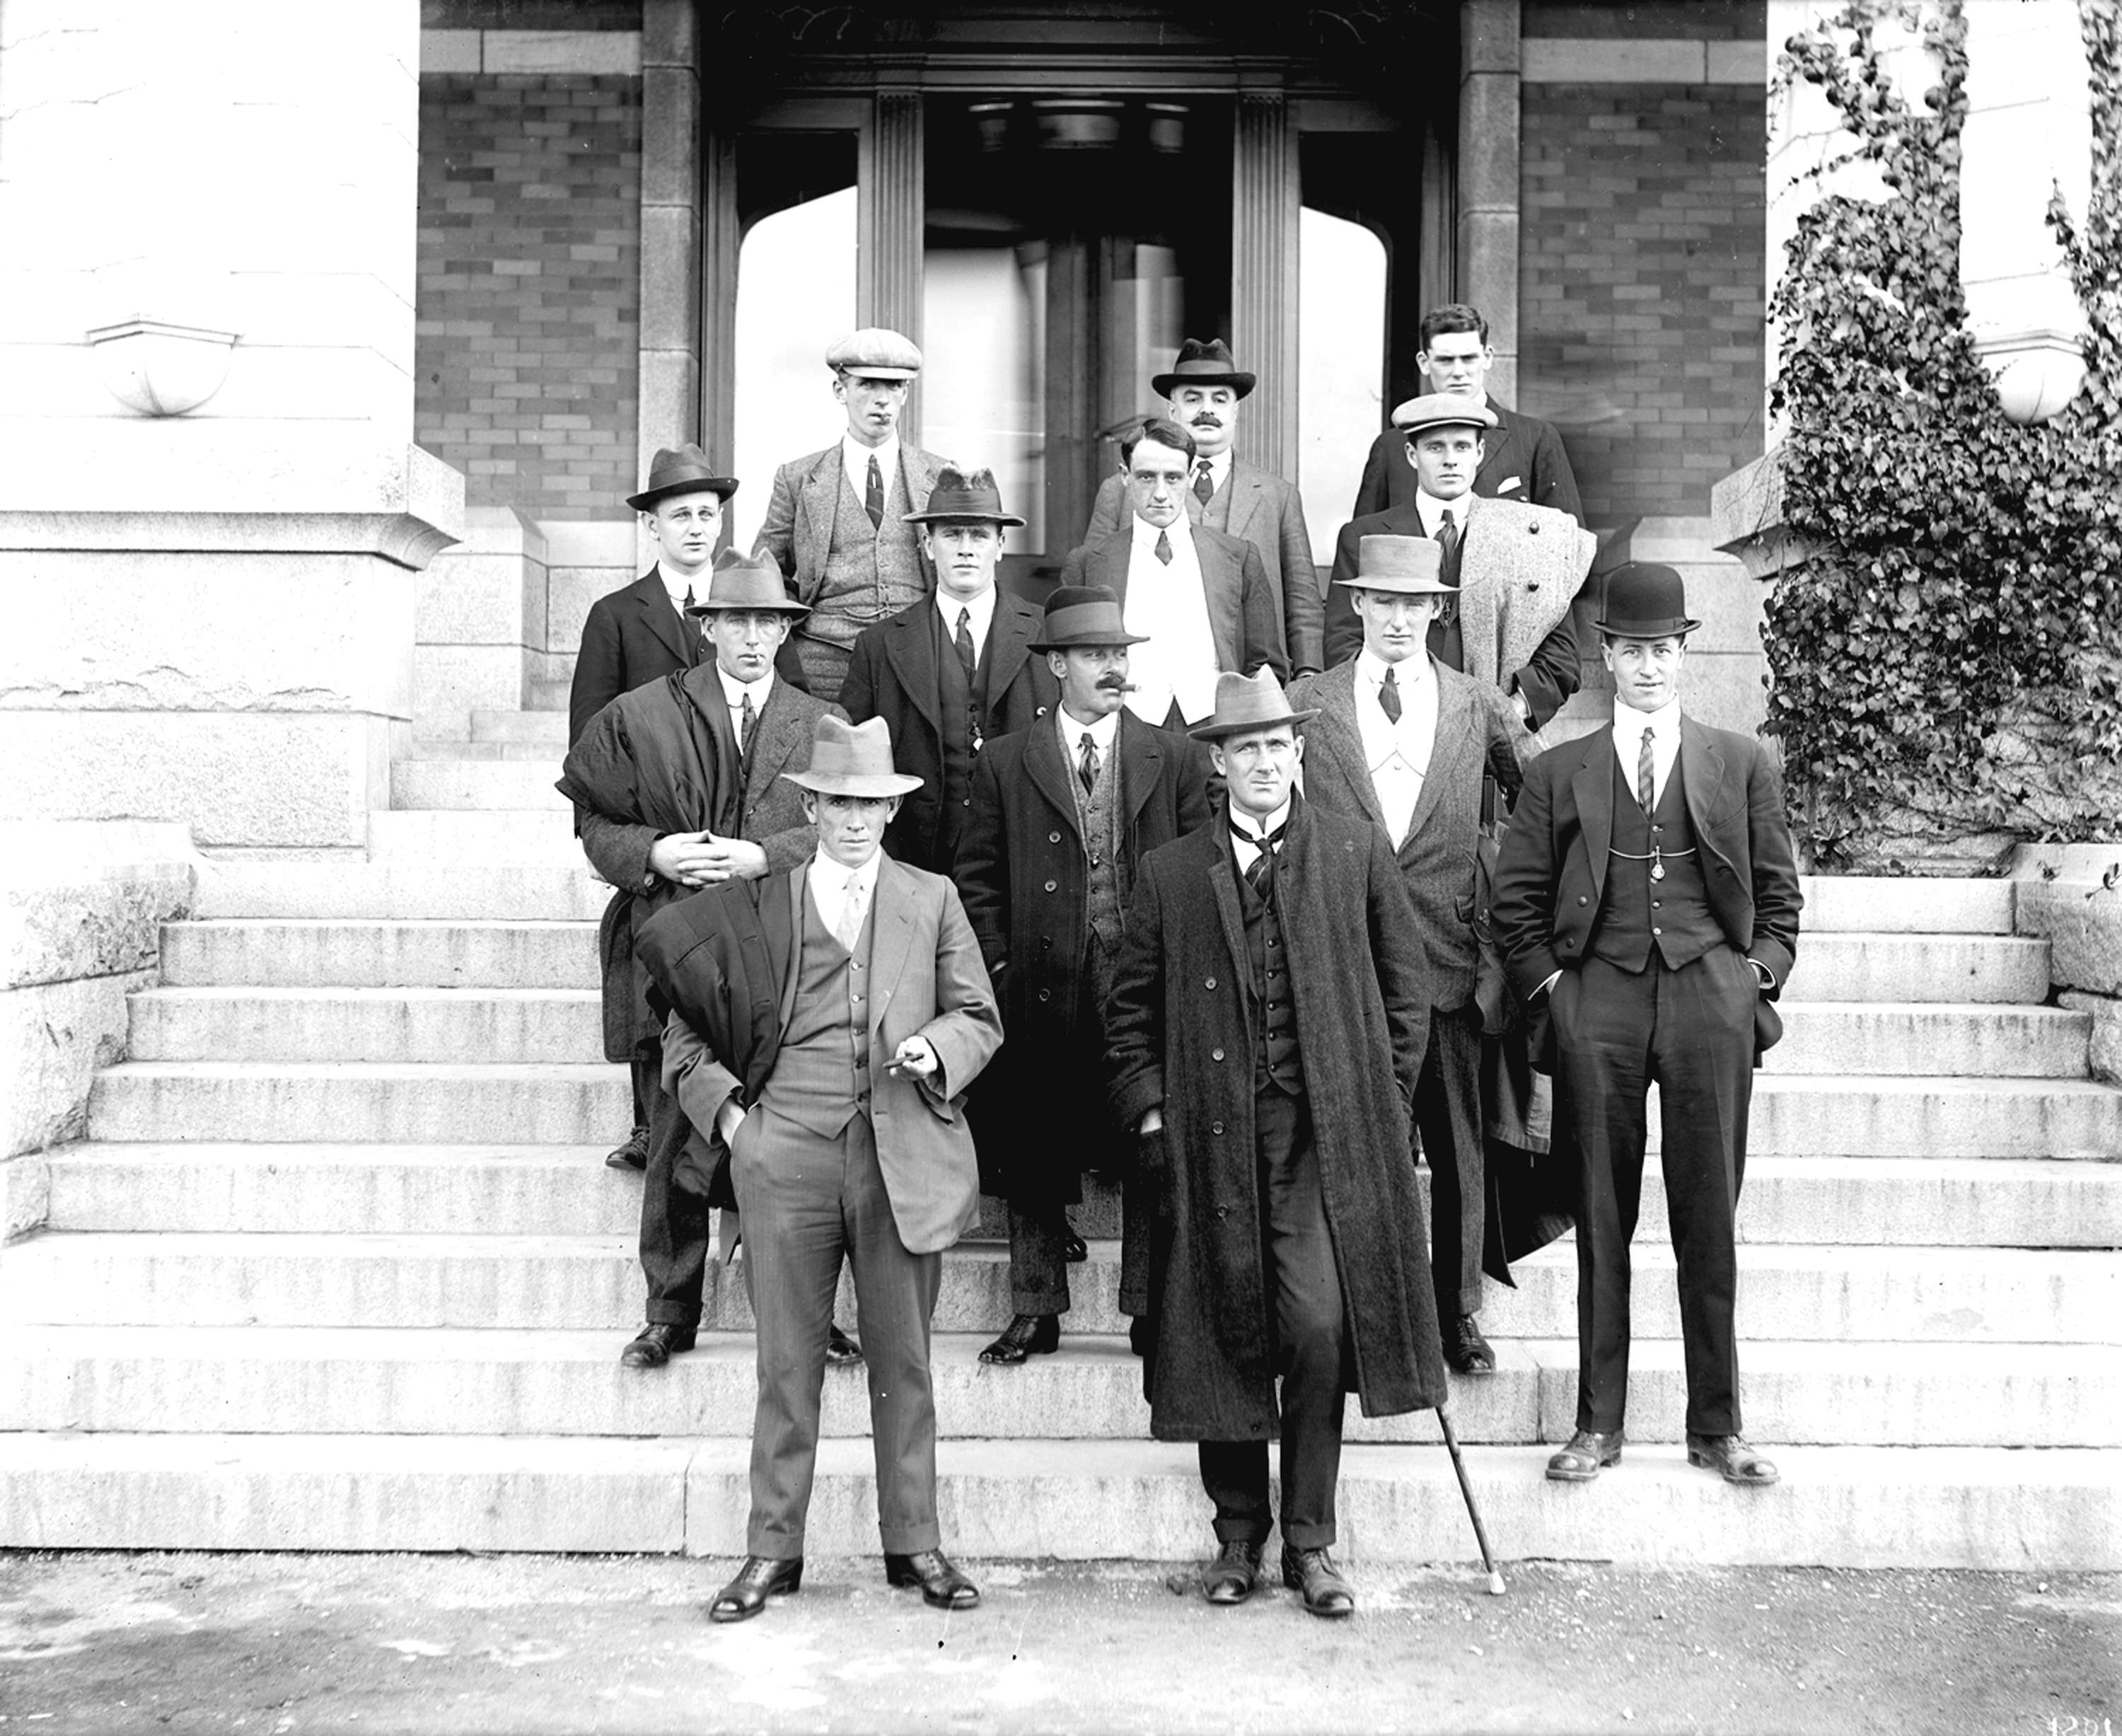 CVA 99-123 - Australian XI [group photo, poss. S. Thomson on right in bowler hat] ca 1911 Stuart Thomson photo.